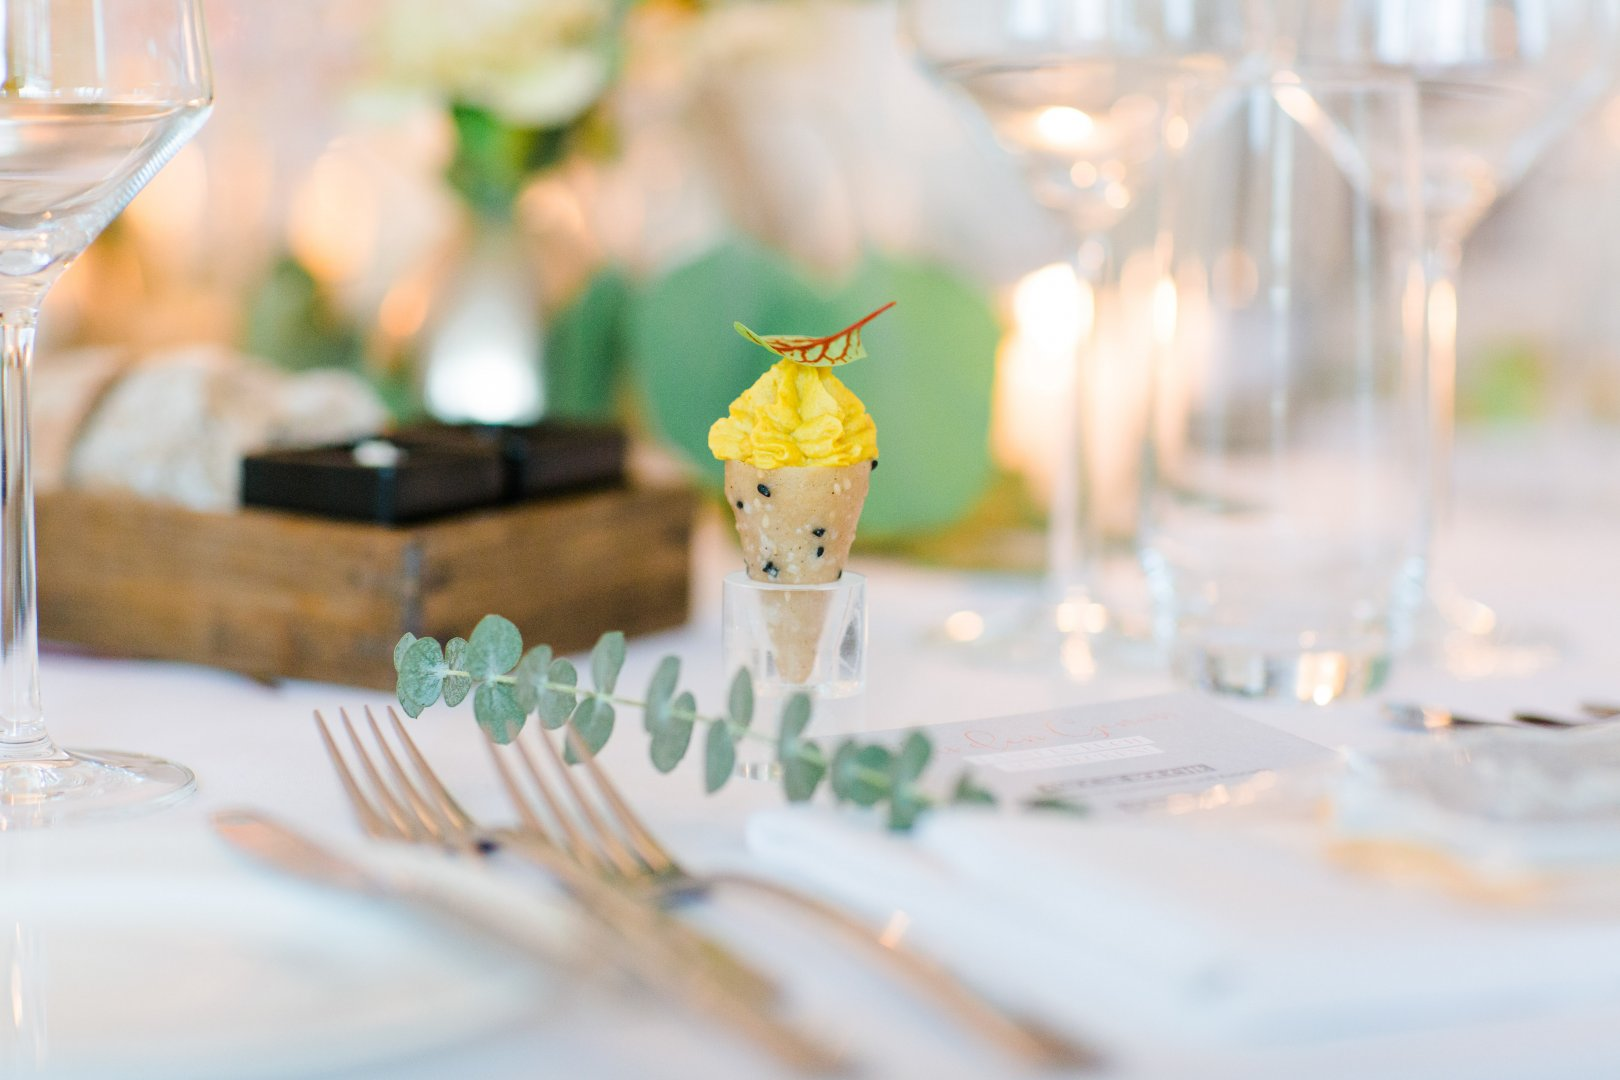 Yellow Rehearsal dinner Table Restaurant À la carte food Brunch Event Food Meal Party Ceremony Tableware Fork Centrepiece